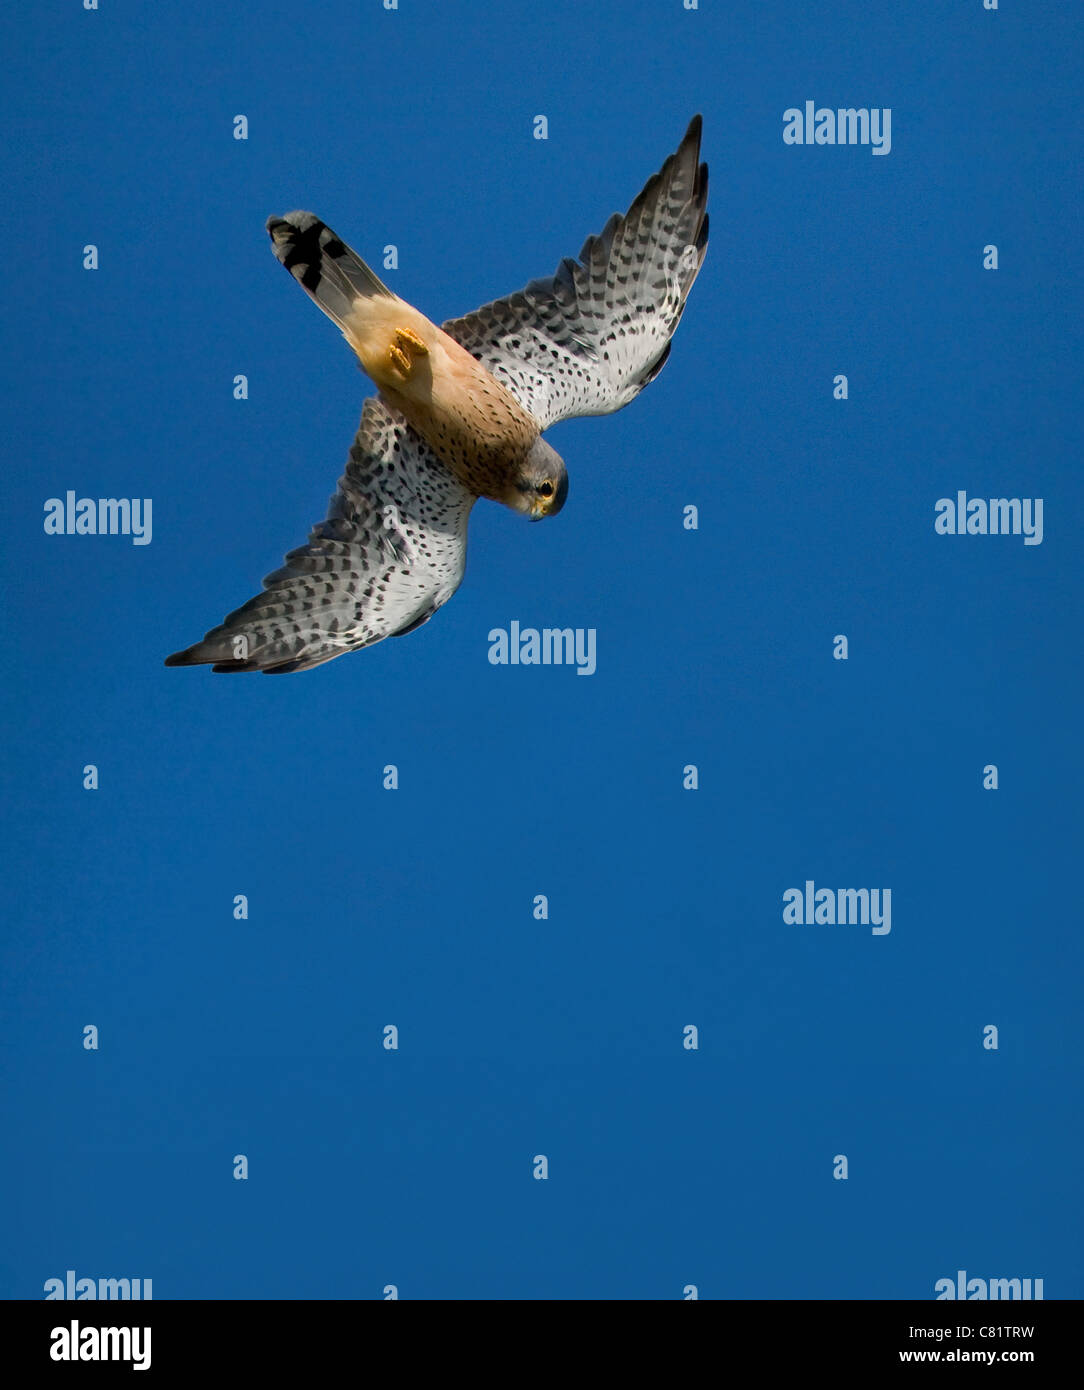 Male Common Kestrel Falco tinnunculus turning into a dive for prey - Dorset UK - Stock Image